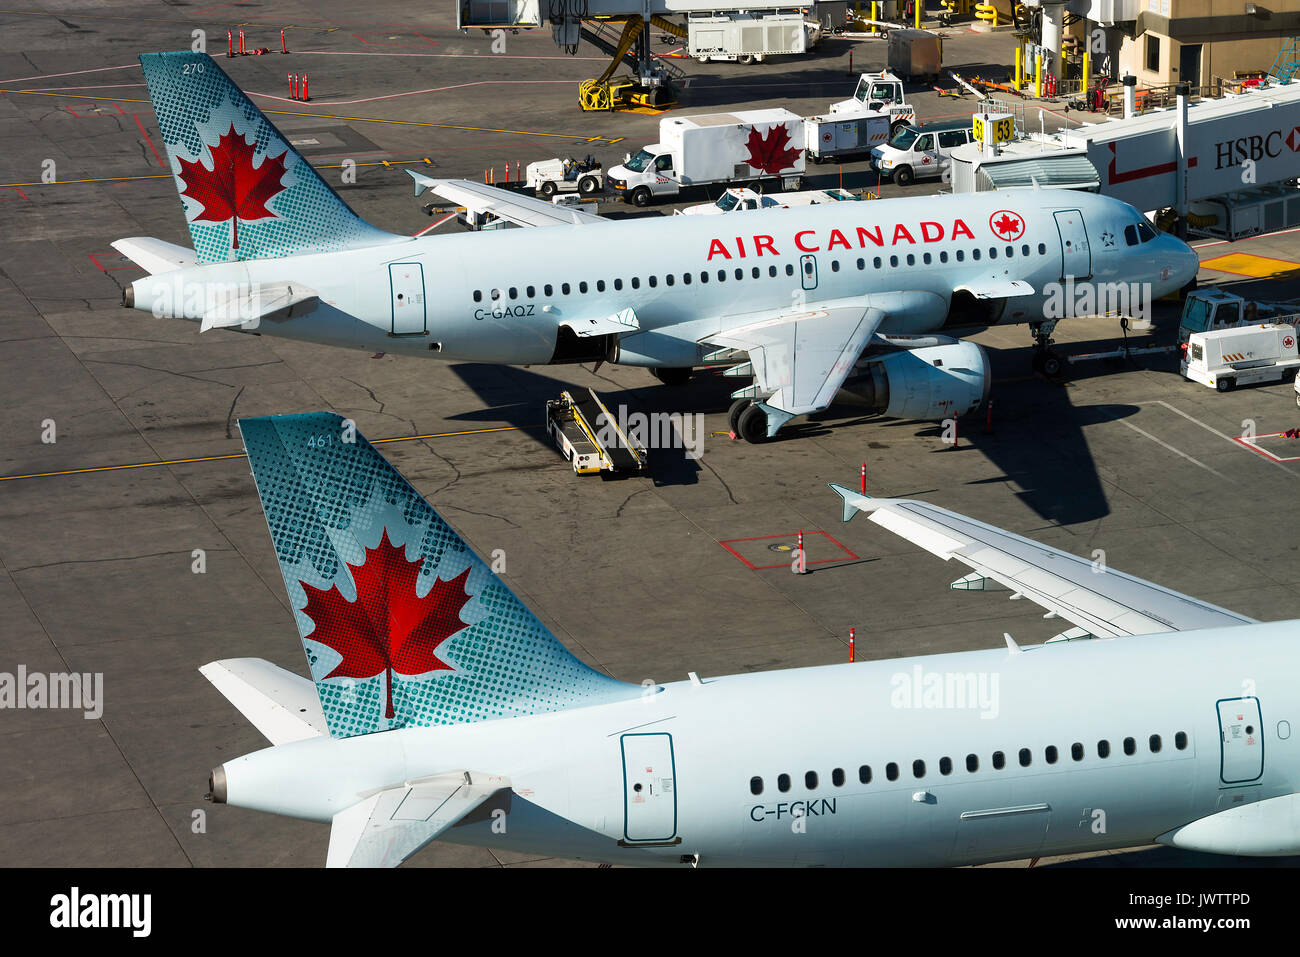 Air Canada Airline Airbus A321-211 and A319-114 Airliners C-FGKN and C-GAQZ on Stands at Calgary International Airport Alberta Canada - Stock Image